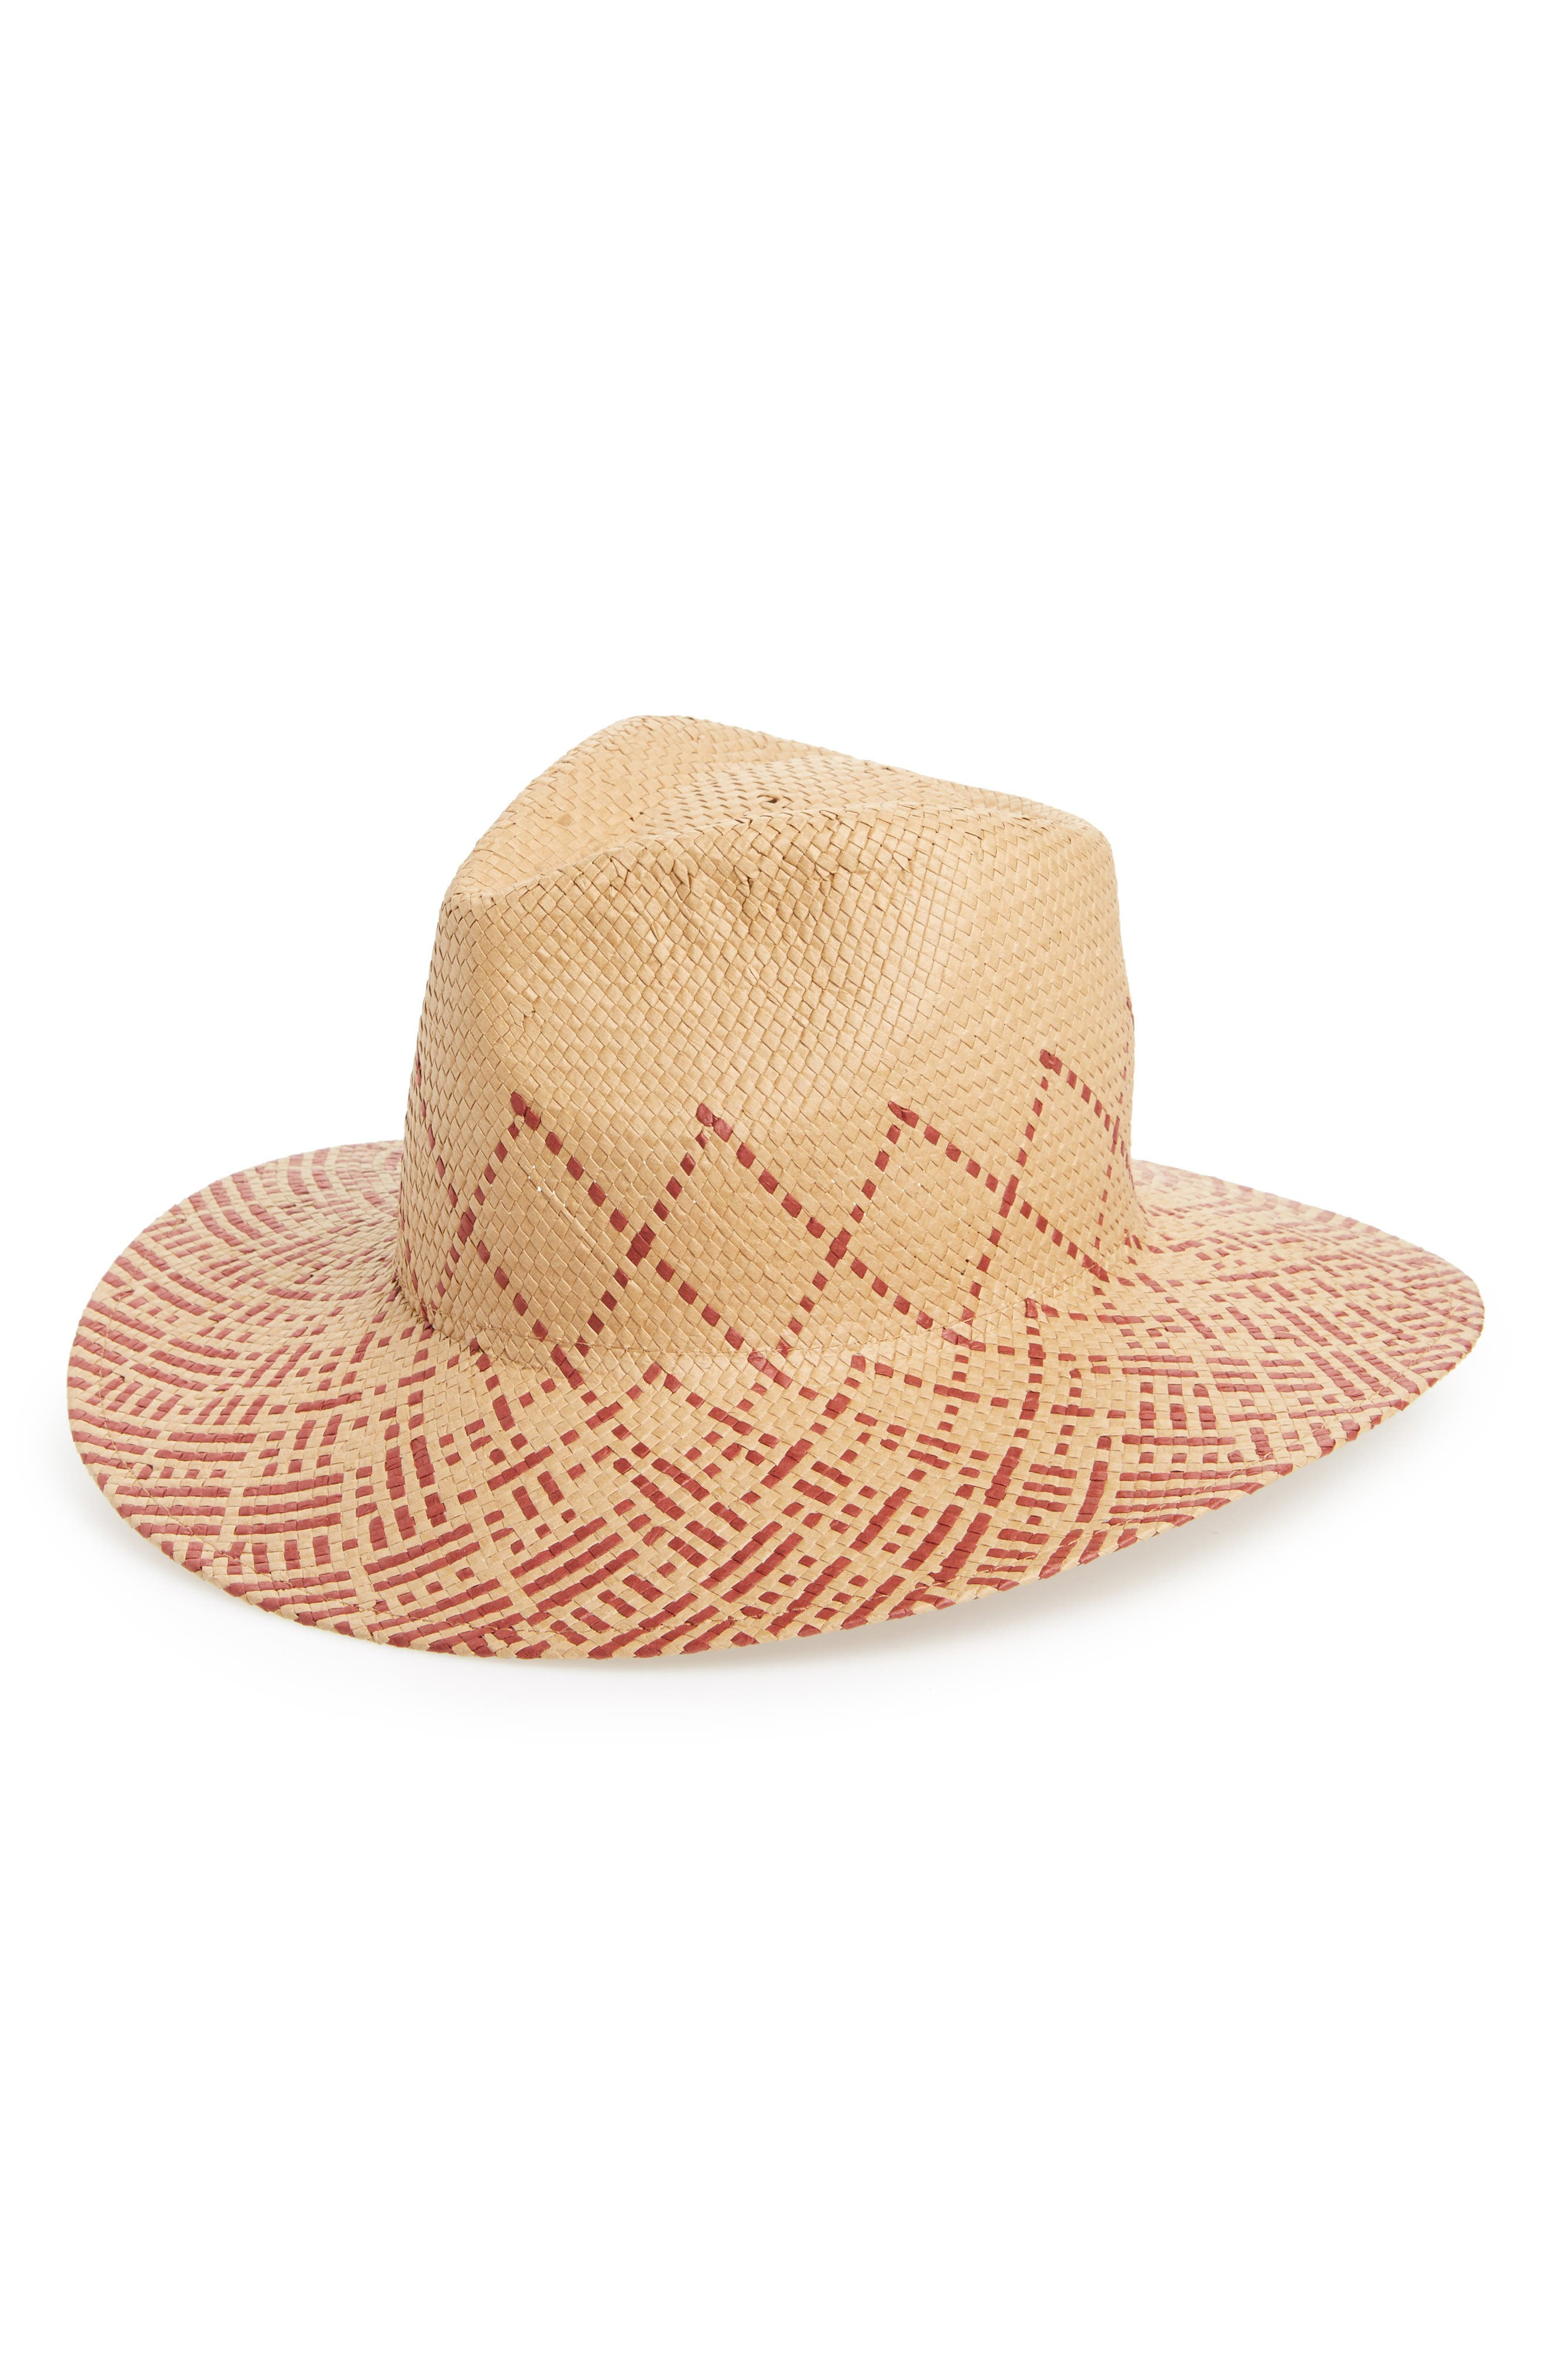 Two-Tone Straw Hat,                         Main,                         color, Tan/ Brown